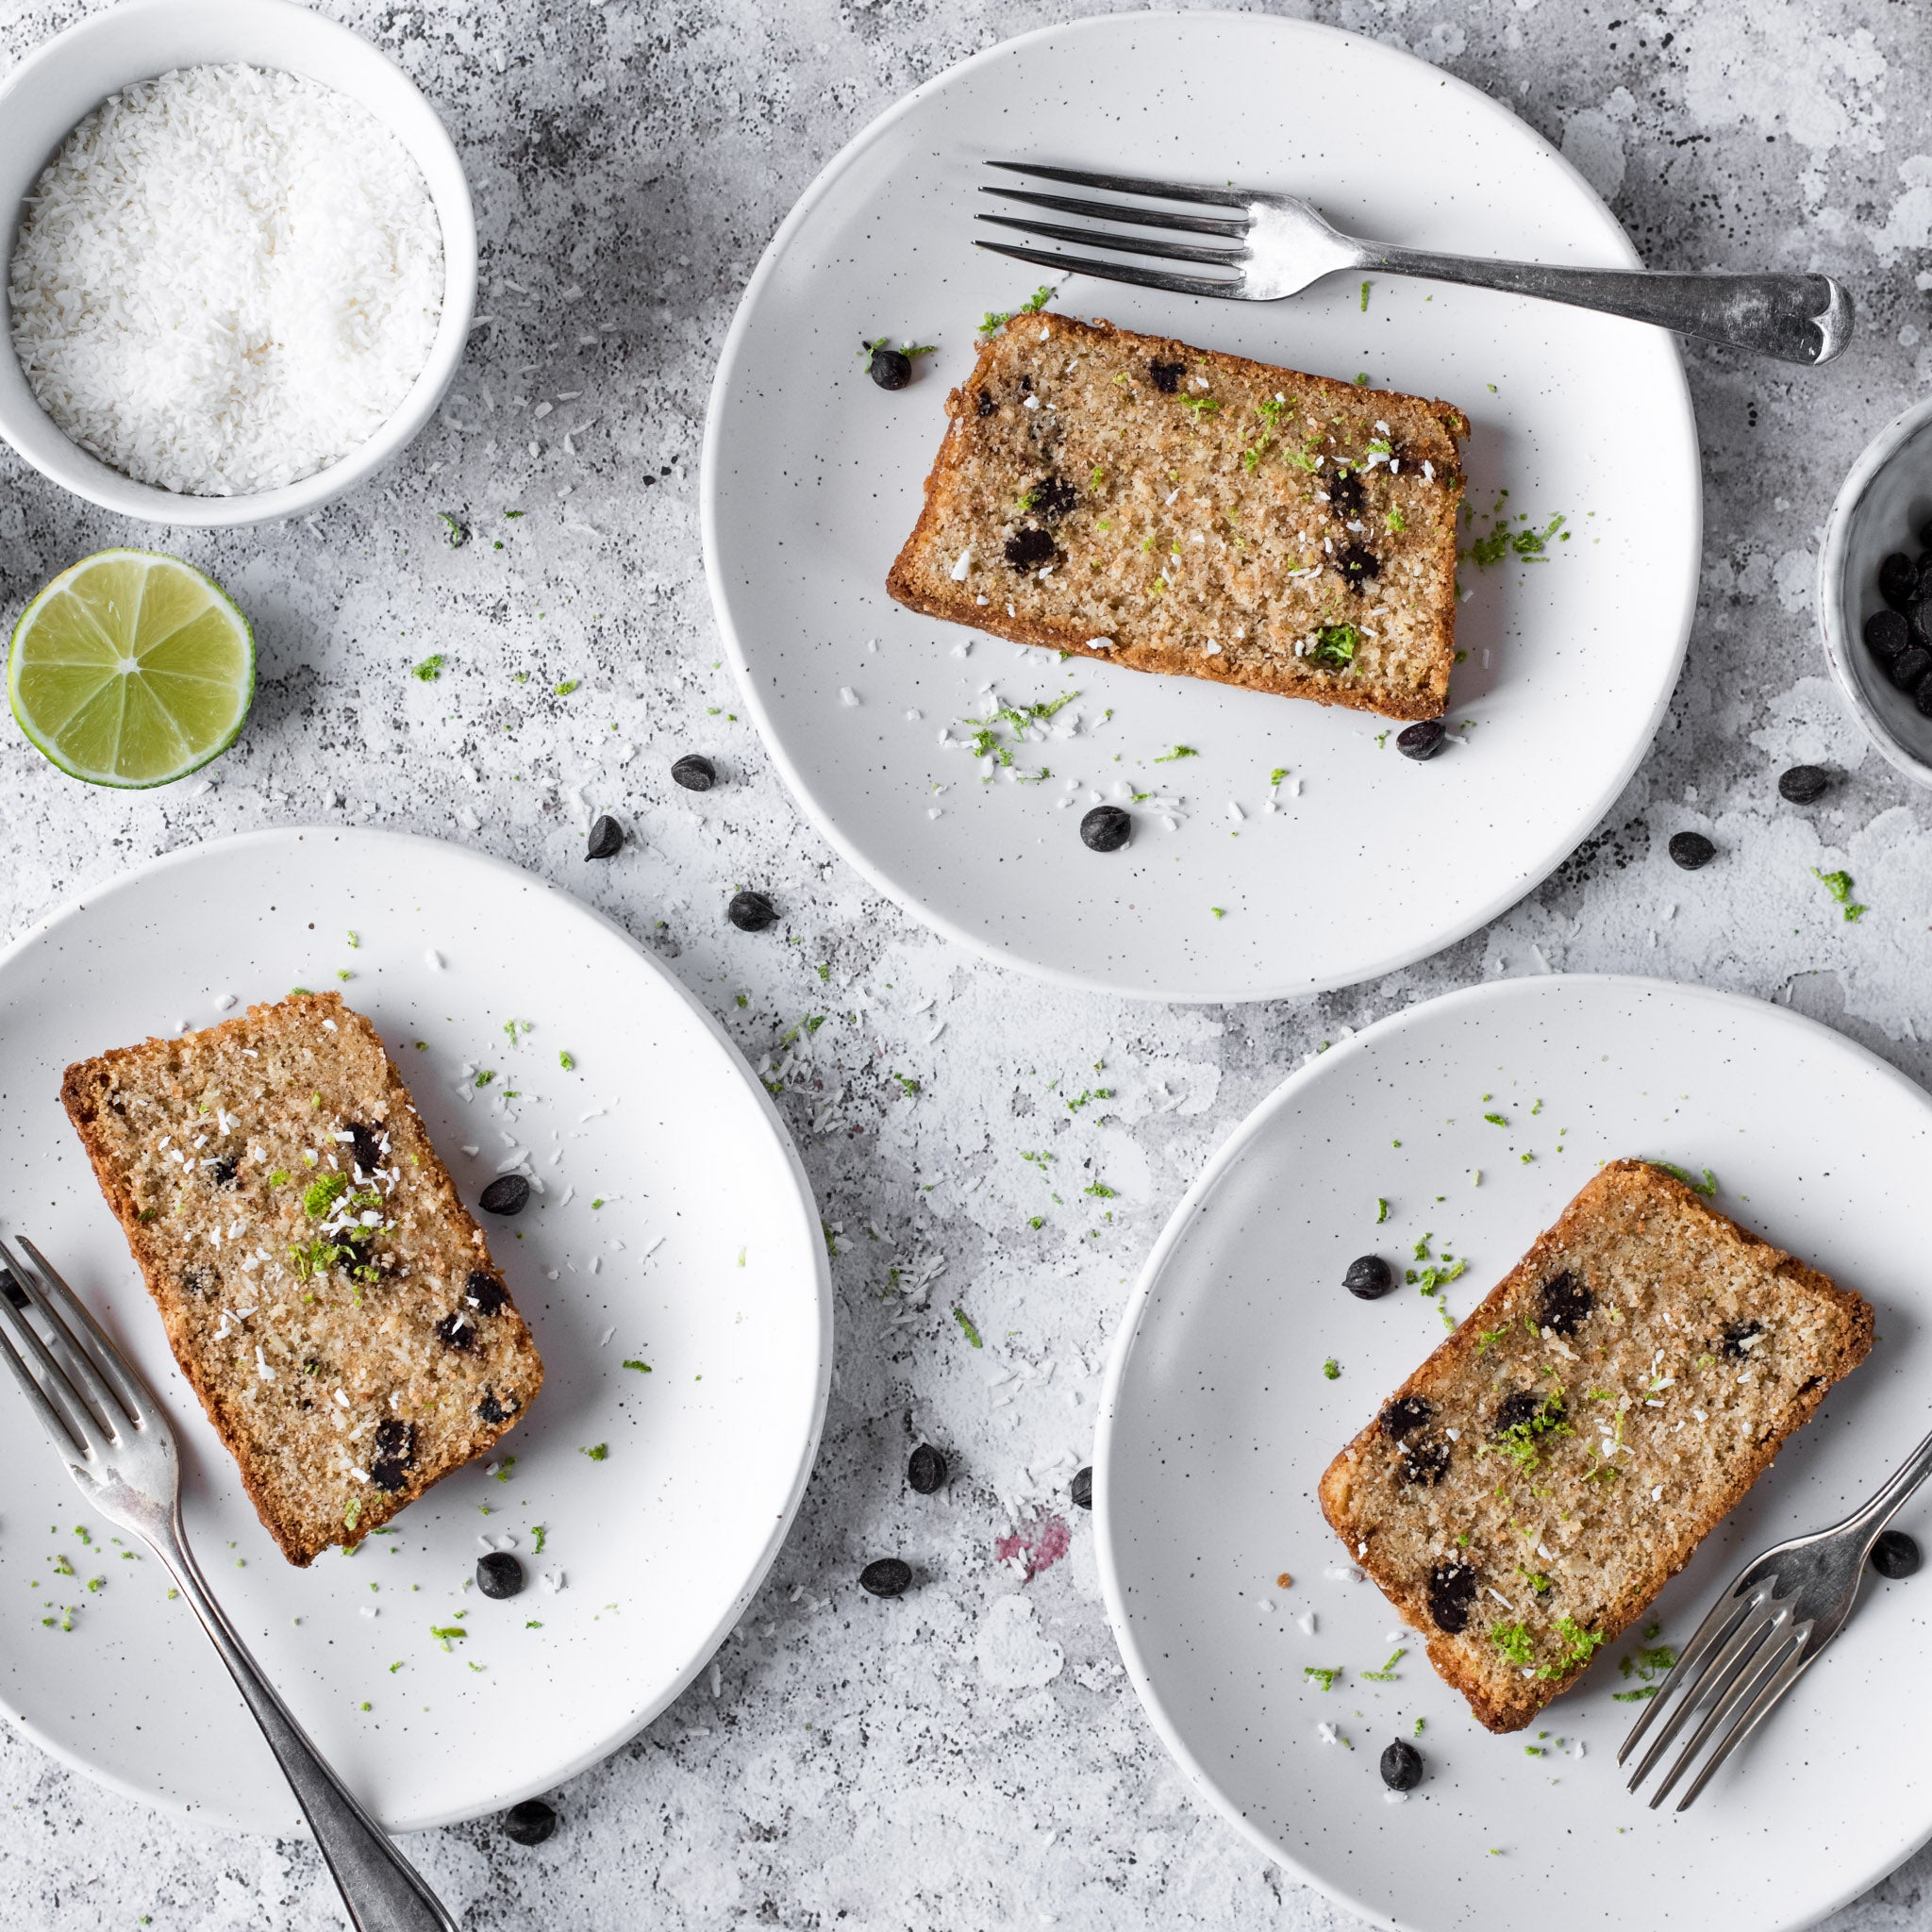 Coconut-Lime-Chocolate-Loaf-by-Allinson-s-(3).jpg